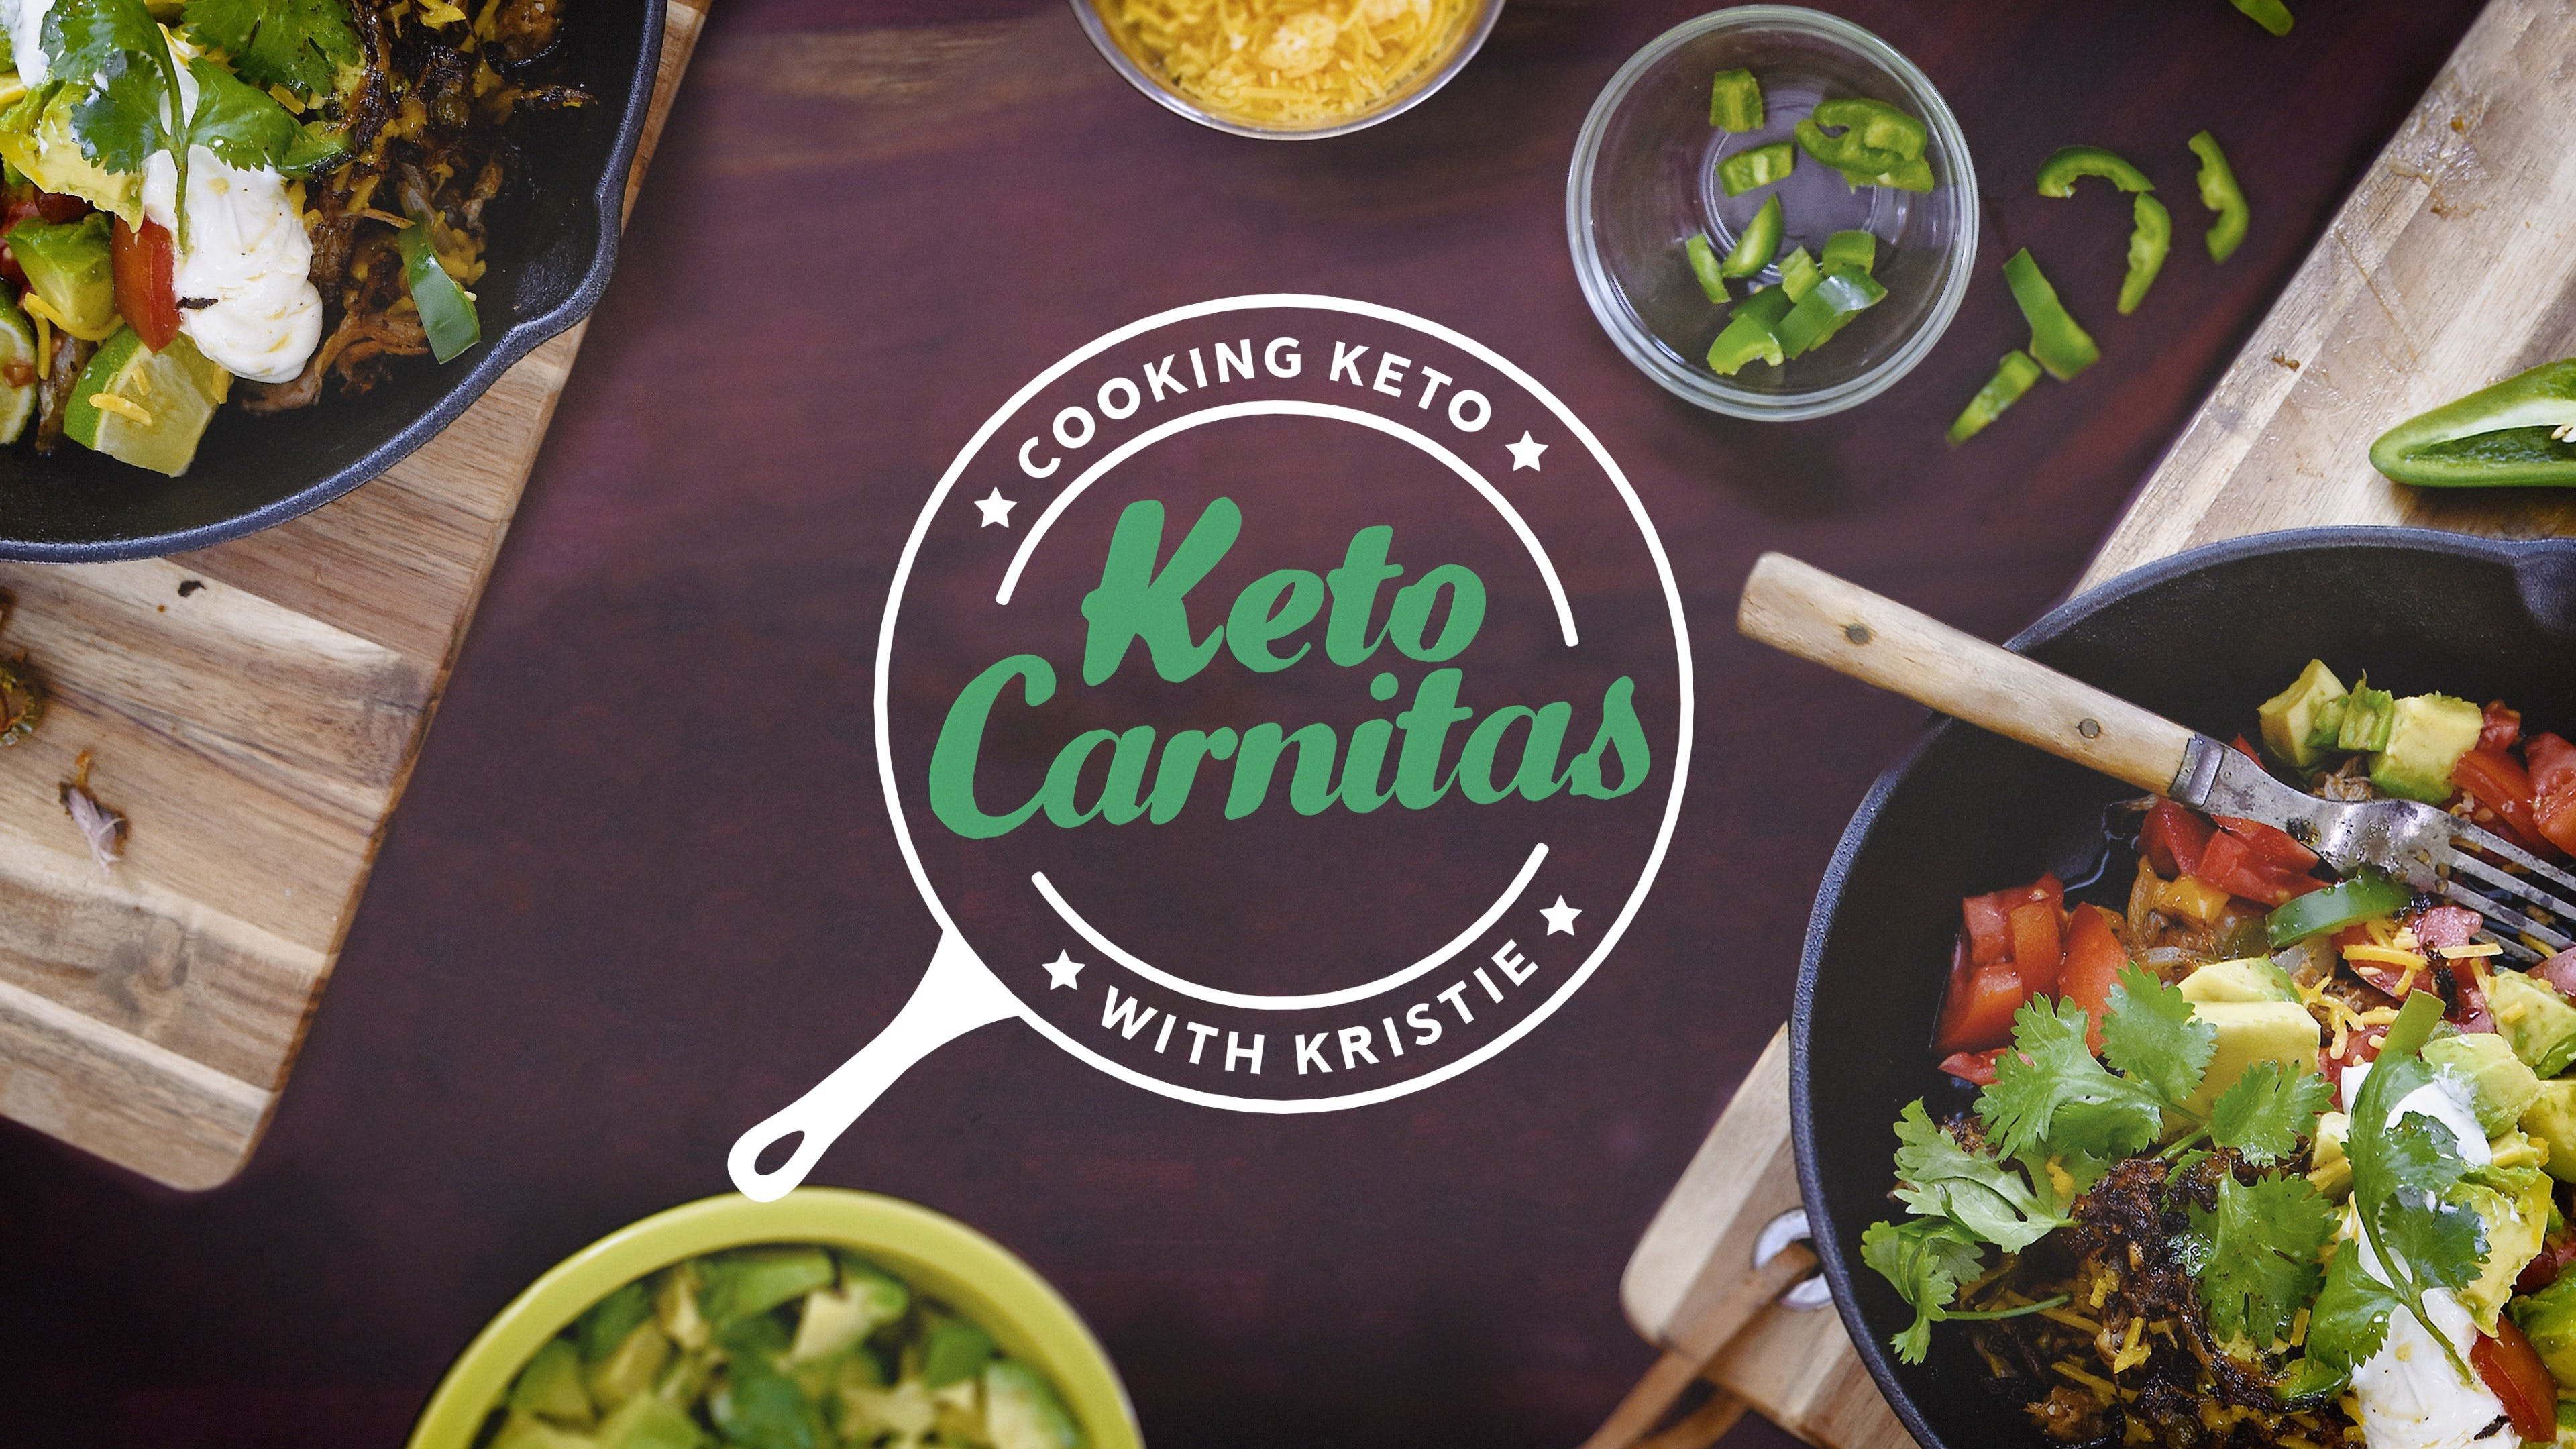 Cooking keto carnitas with Kristie